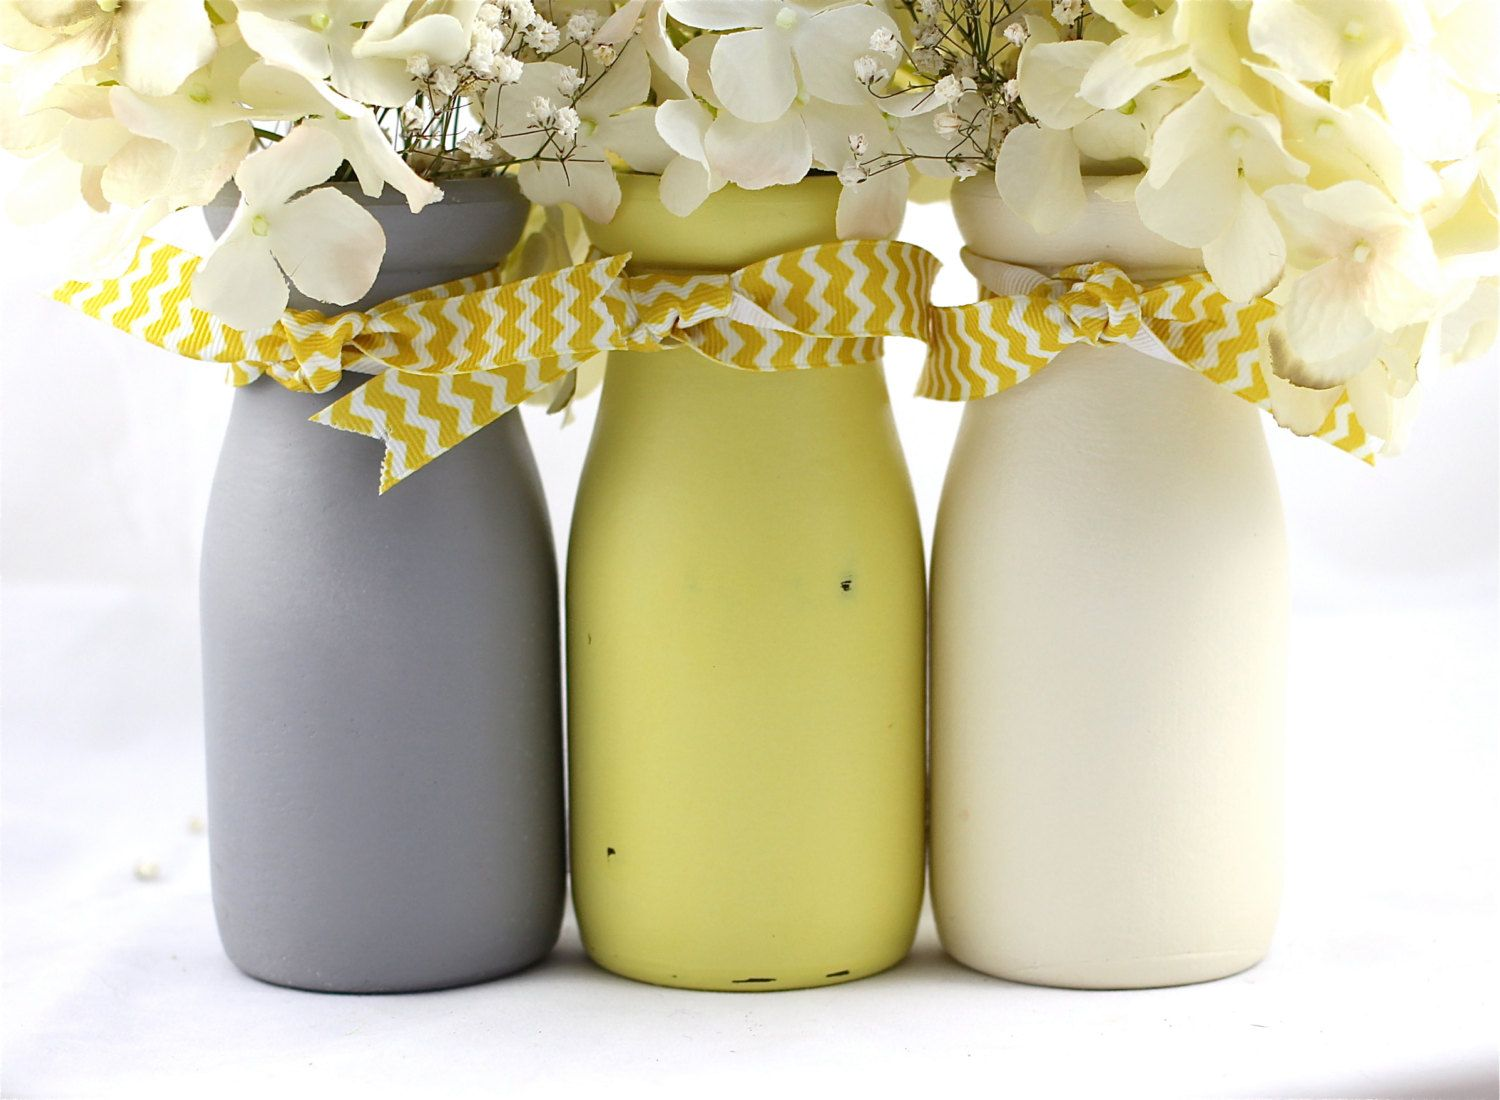 Yellow And Gray Baby Shower Decorations Centerpiece Painted Milk Bottles  Vases Nursery Ribbon Hostess Gifts Mason